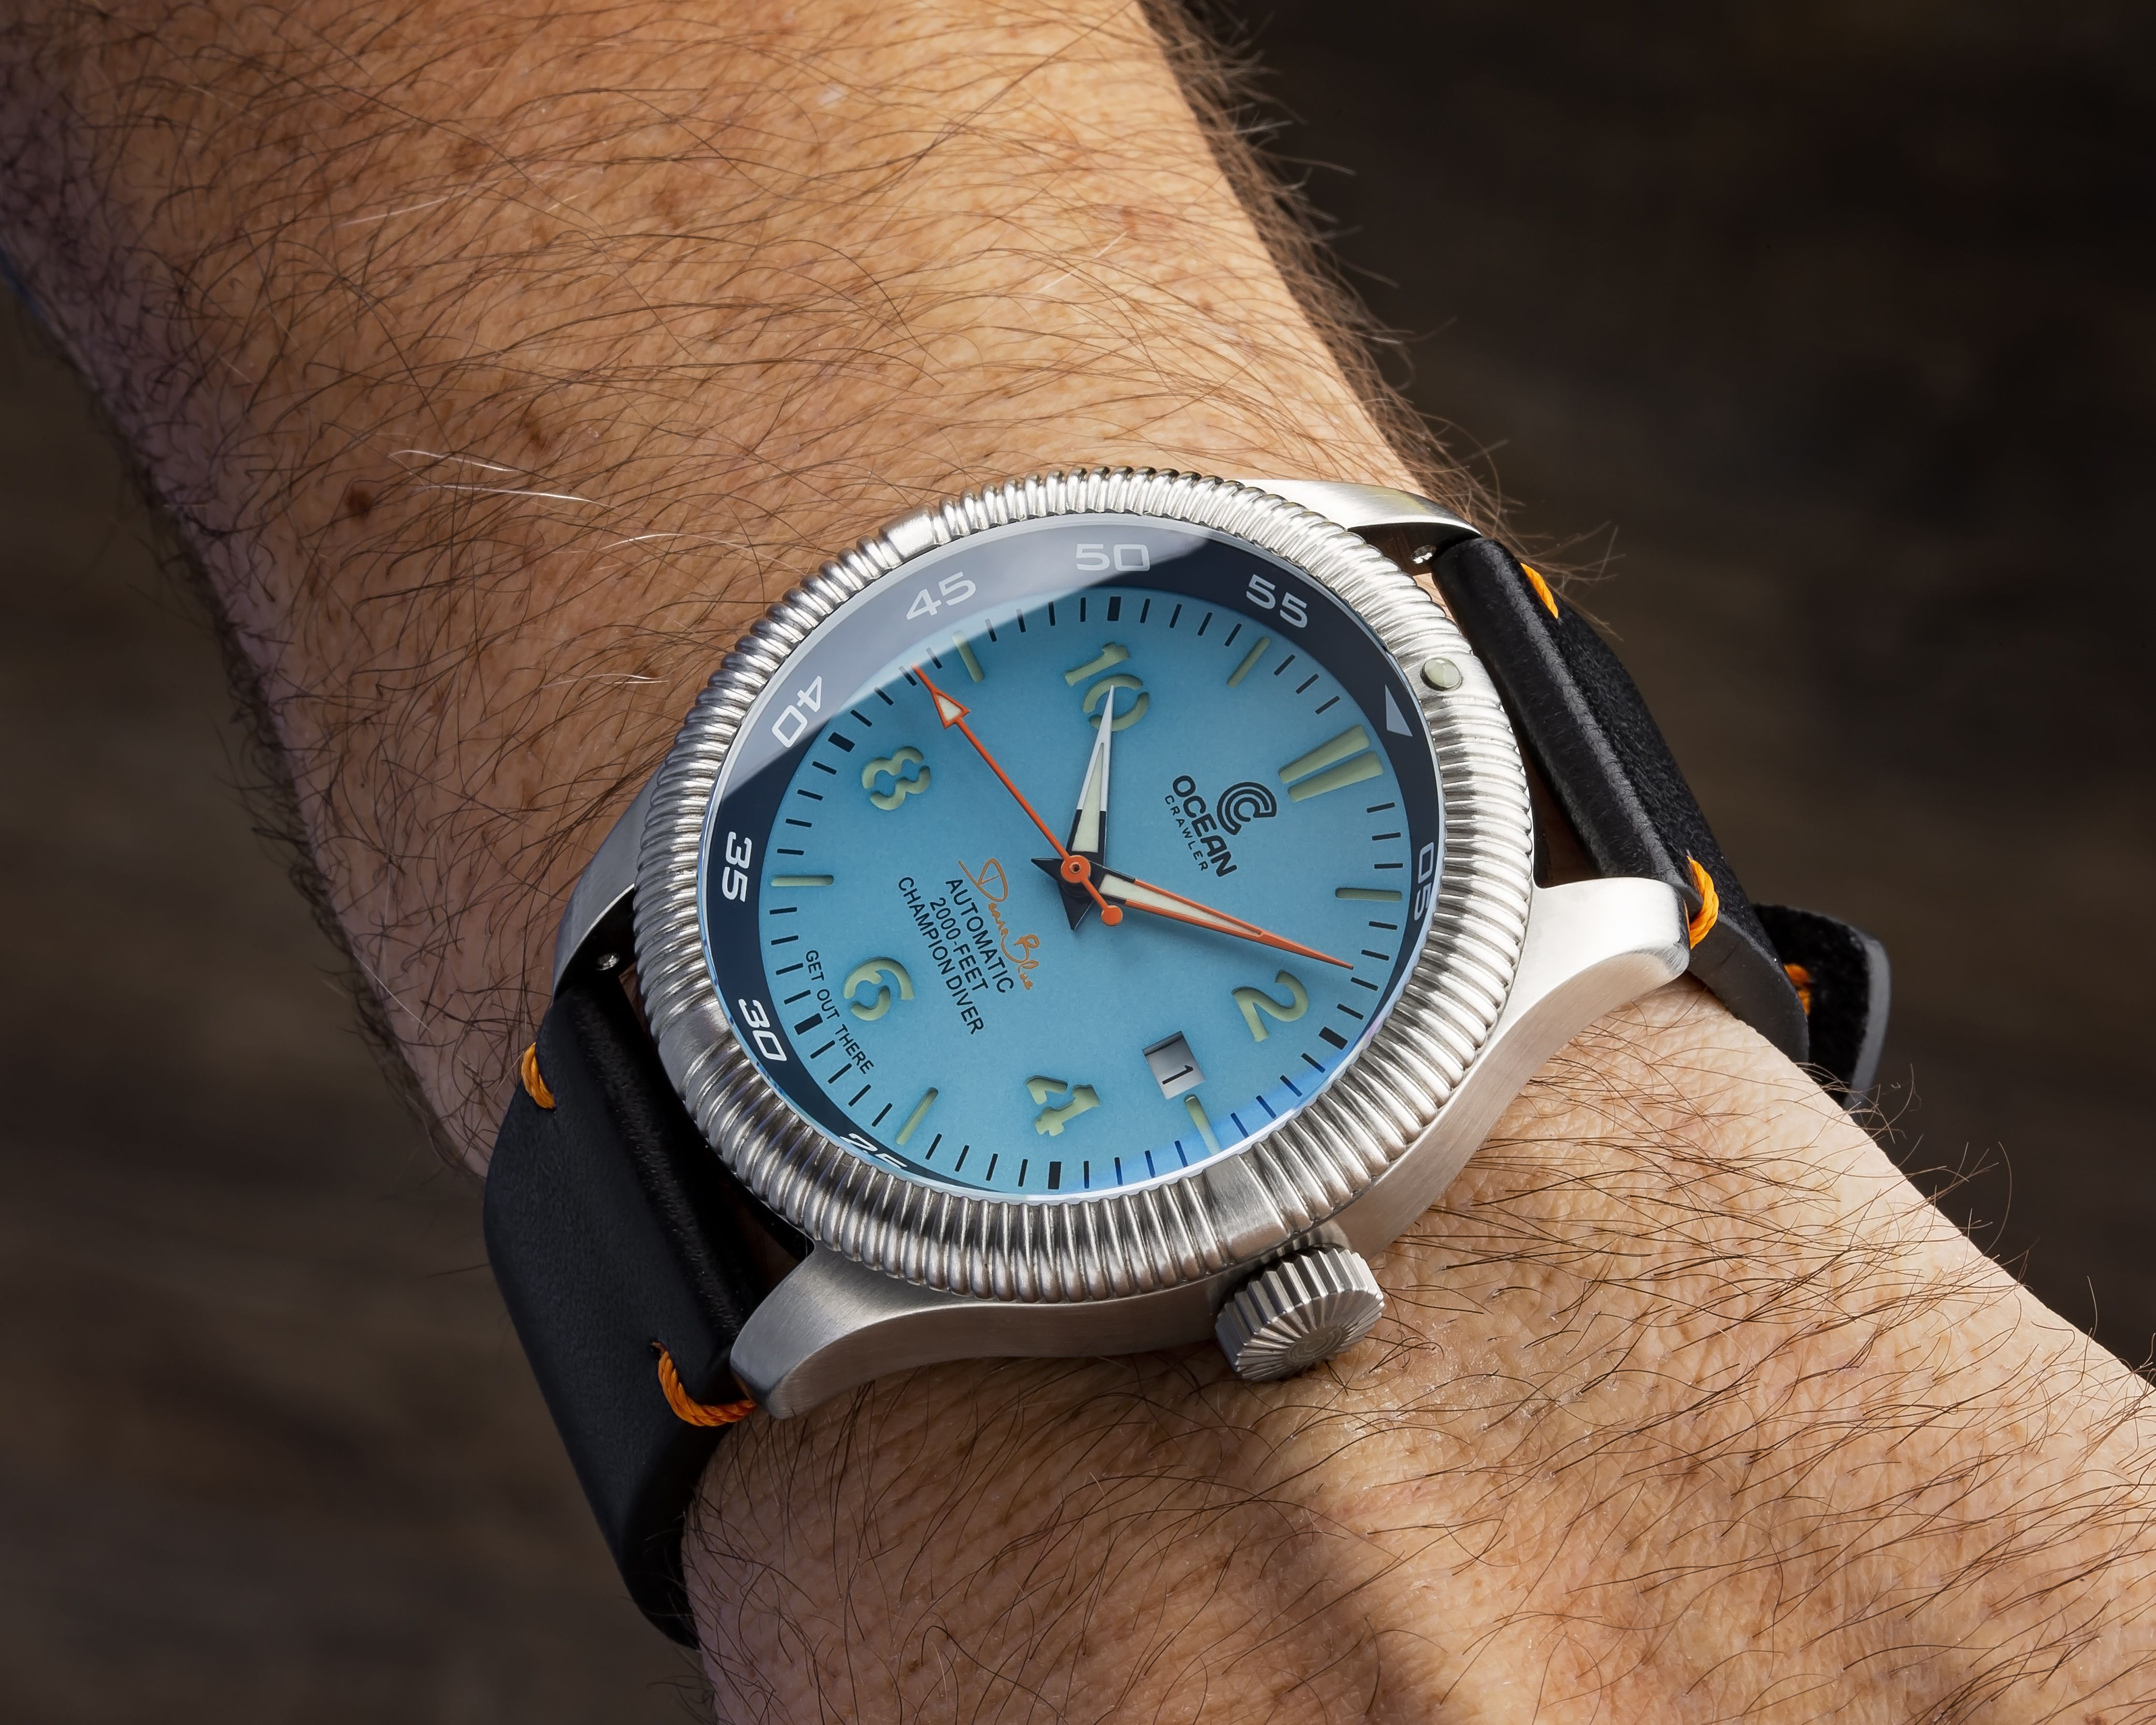 wrist shot of the teal dial ocean crawler champion diver dean s blue hole is a blue dive hole located in the b dive watches watches for men best gifts for men teal dial ocean crawler champion diver